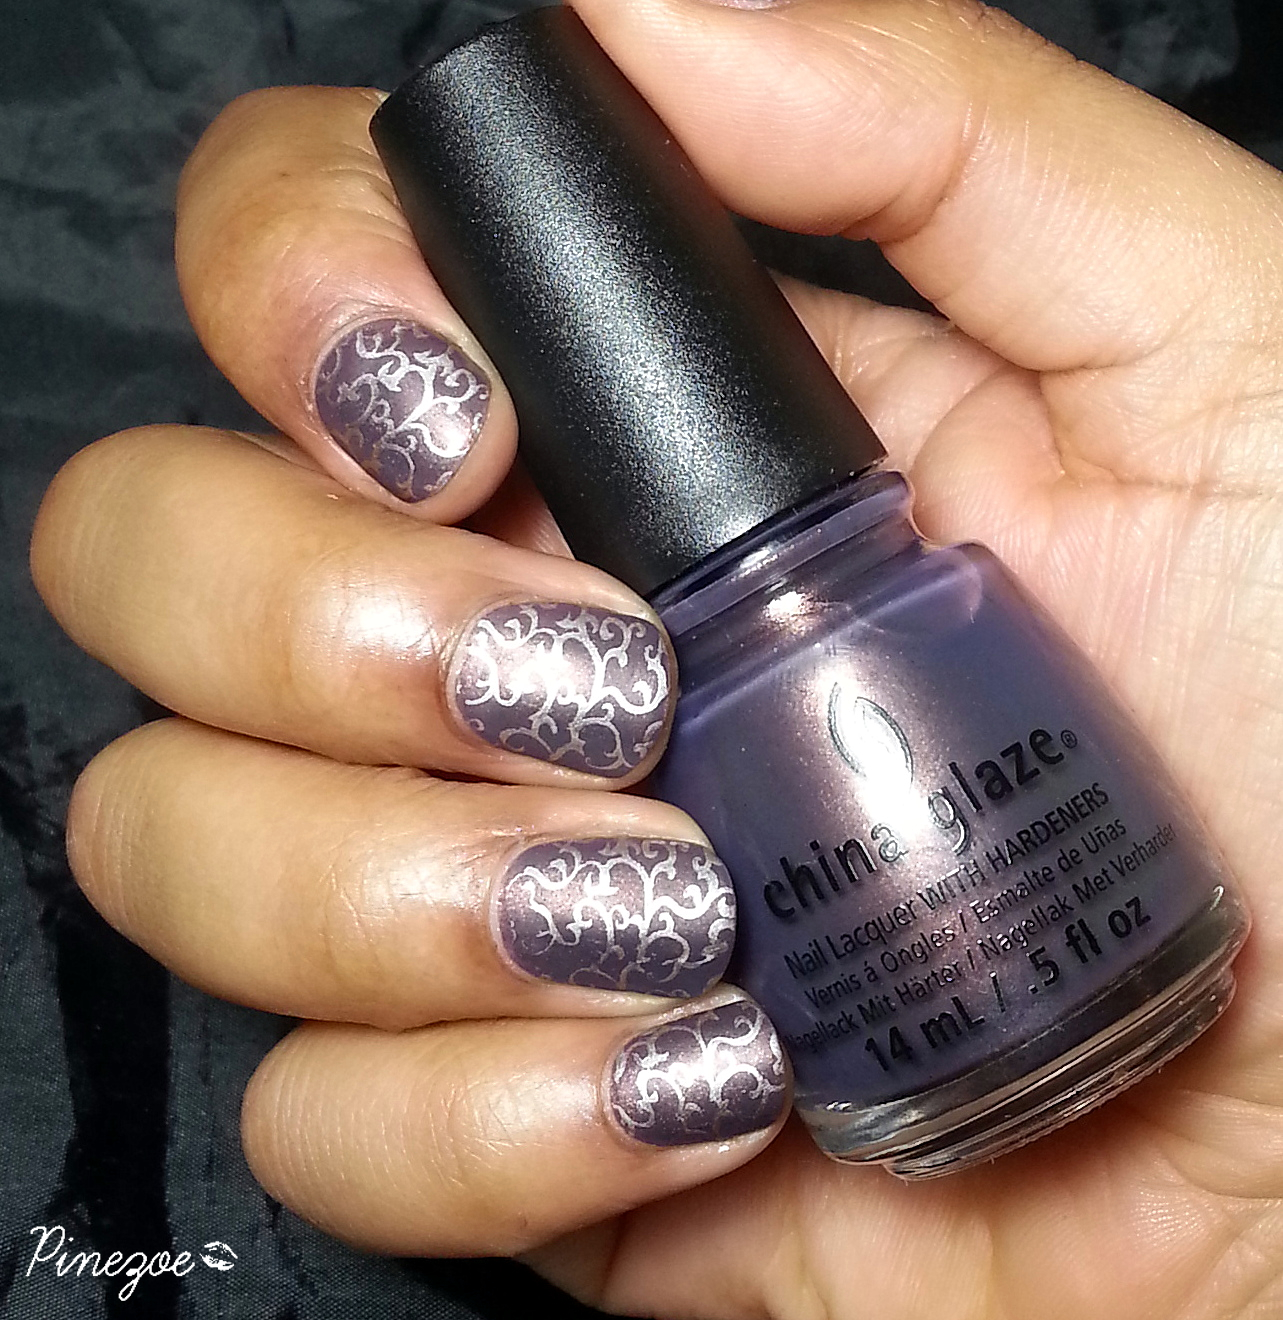 China Glaze - Choo choo choose you & stamping fleurs arabesques